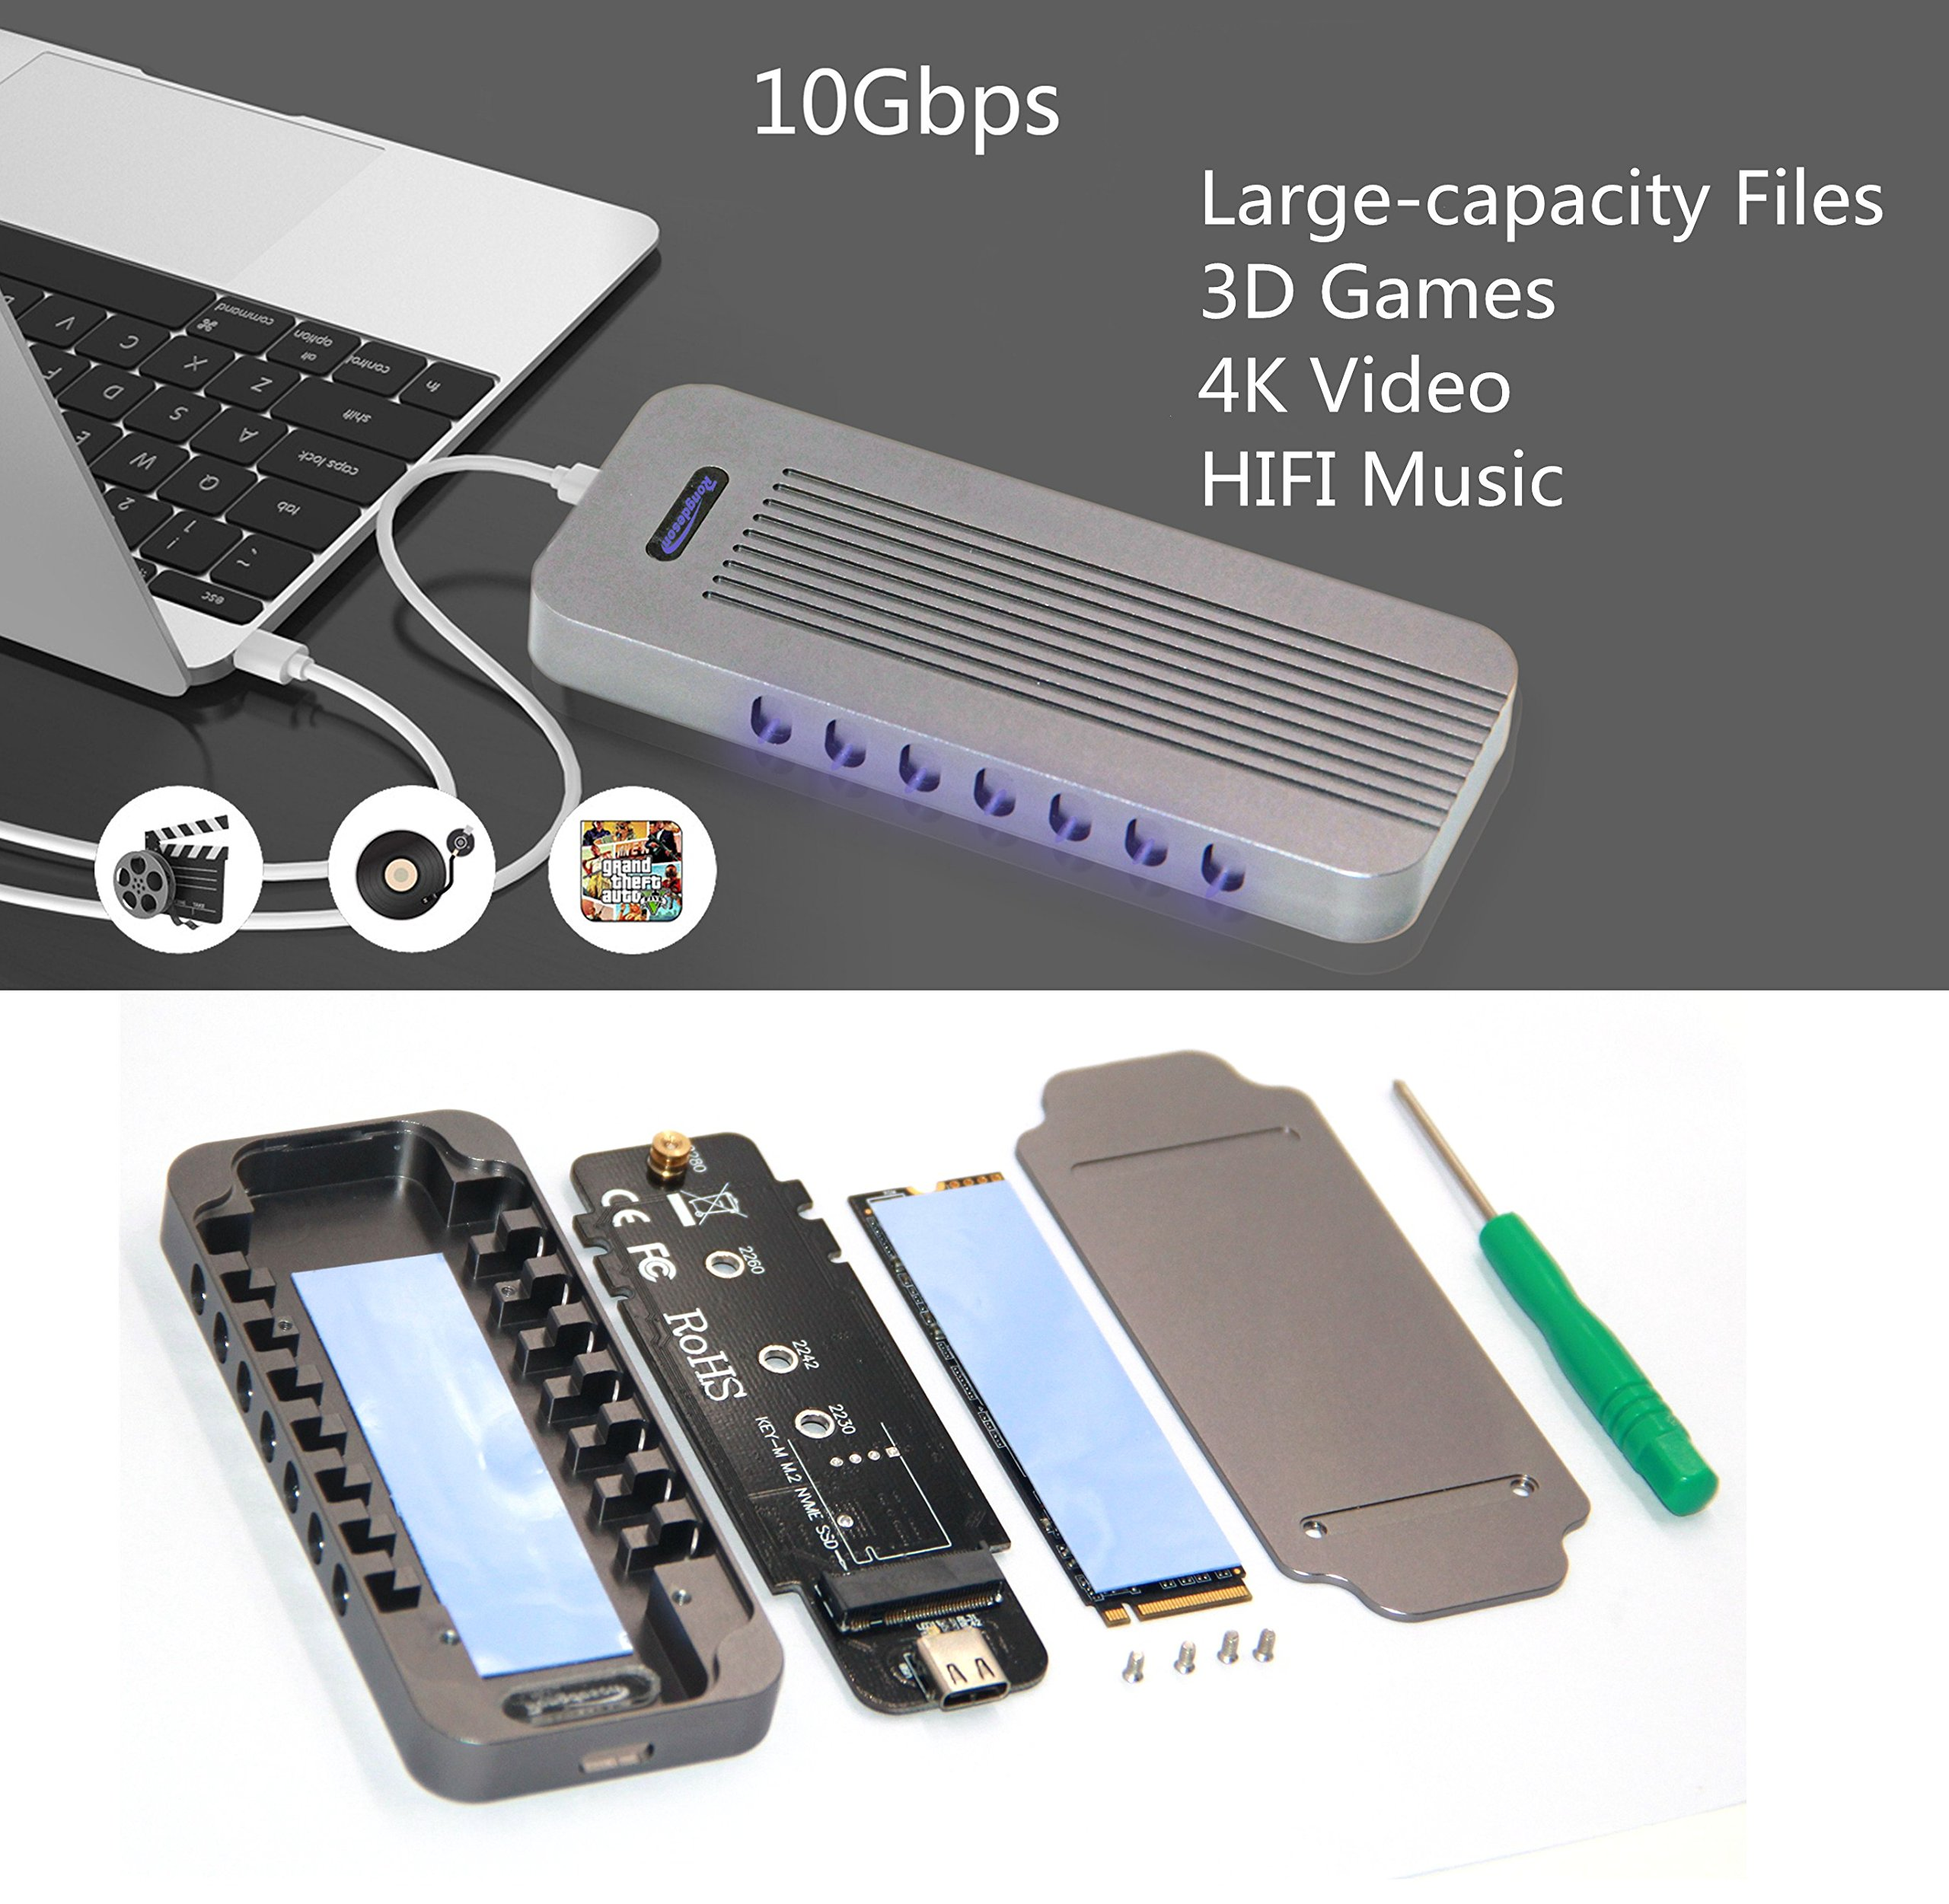 USB Type-C 10Gbps M.2 SSD Enclosure M Key, USB 3.1 To PCI-E NVMe Hard Disk Case Aluminum Design Support 2230 2242 2260 2280 Support Samsung SM951/SM961 (902 CToC, Charcoal Gray) by WBTUO (Image #10)